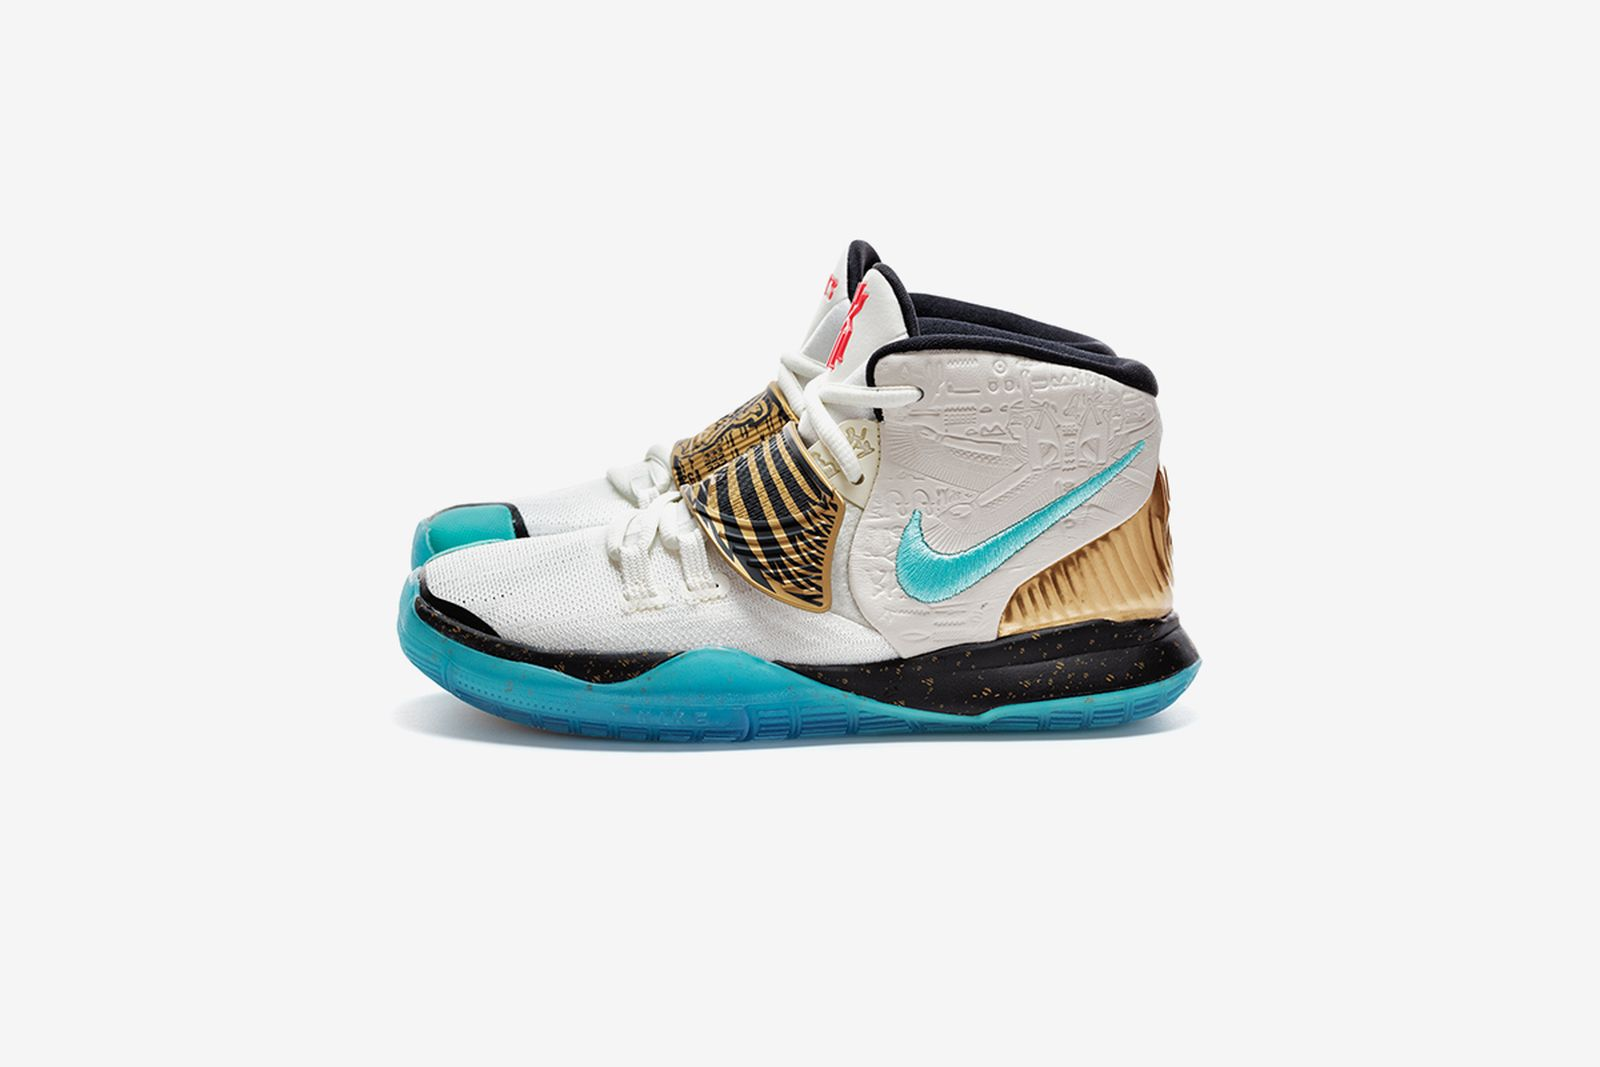 concepts-nike-kyrie-6-release-date-price-14